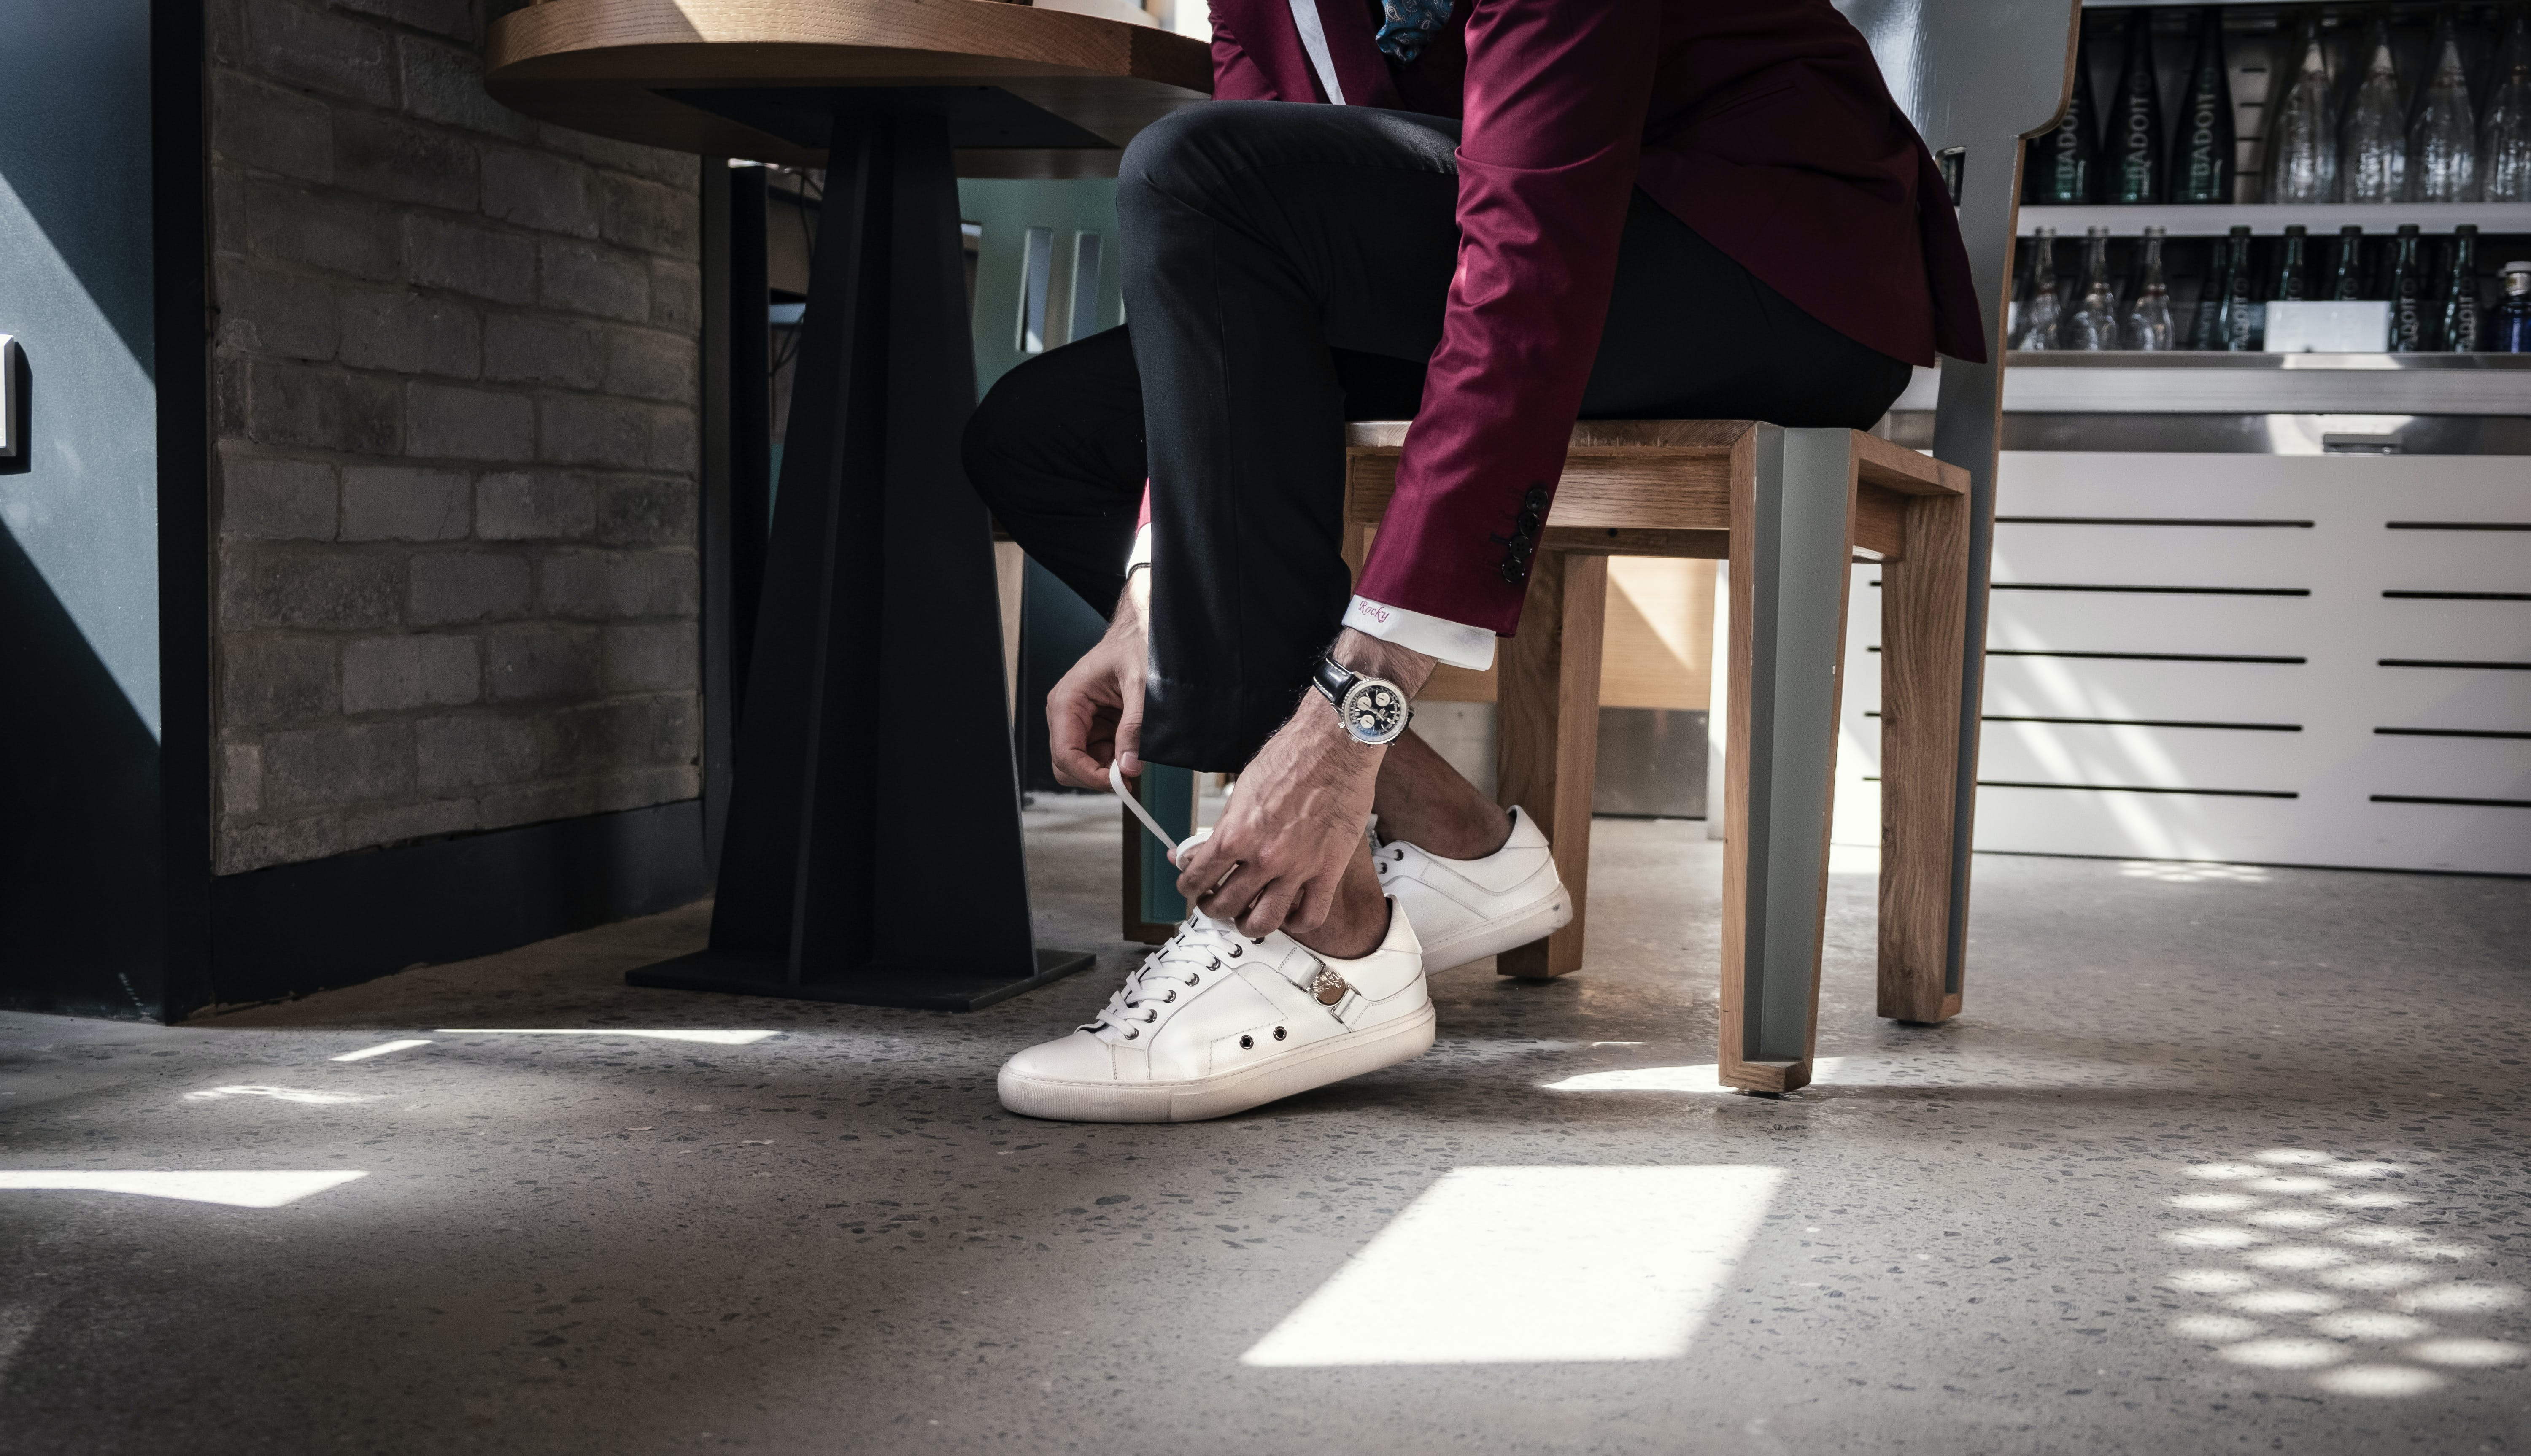 Man Sitting on Chair While Holding Shoe Lace